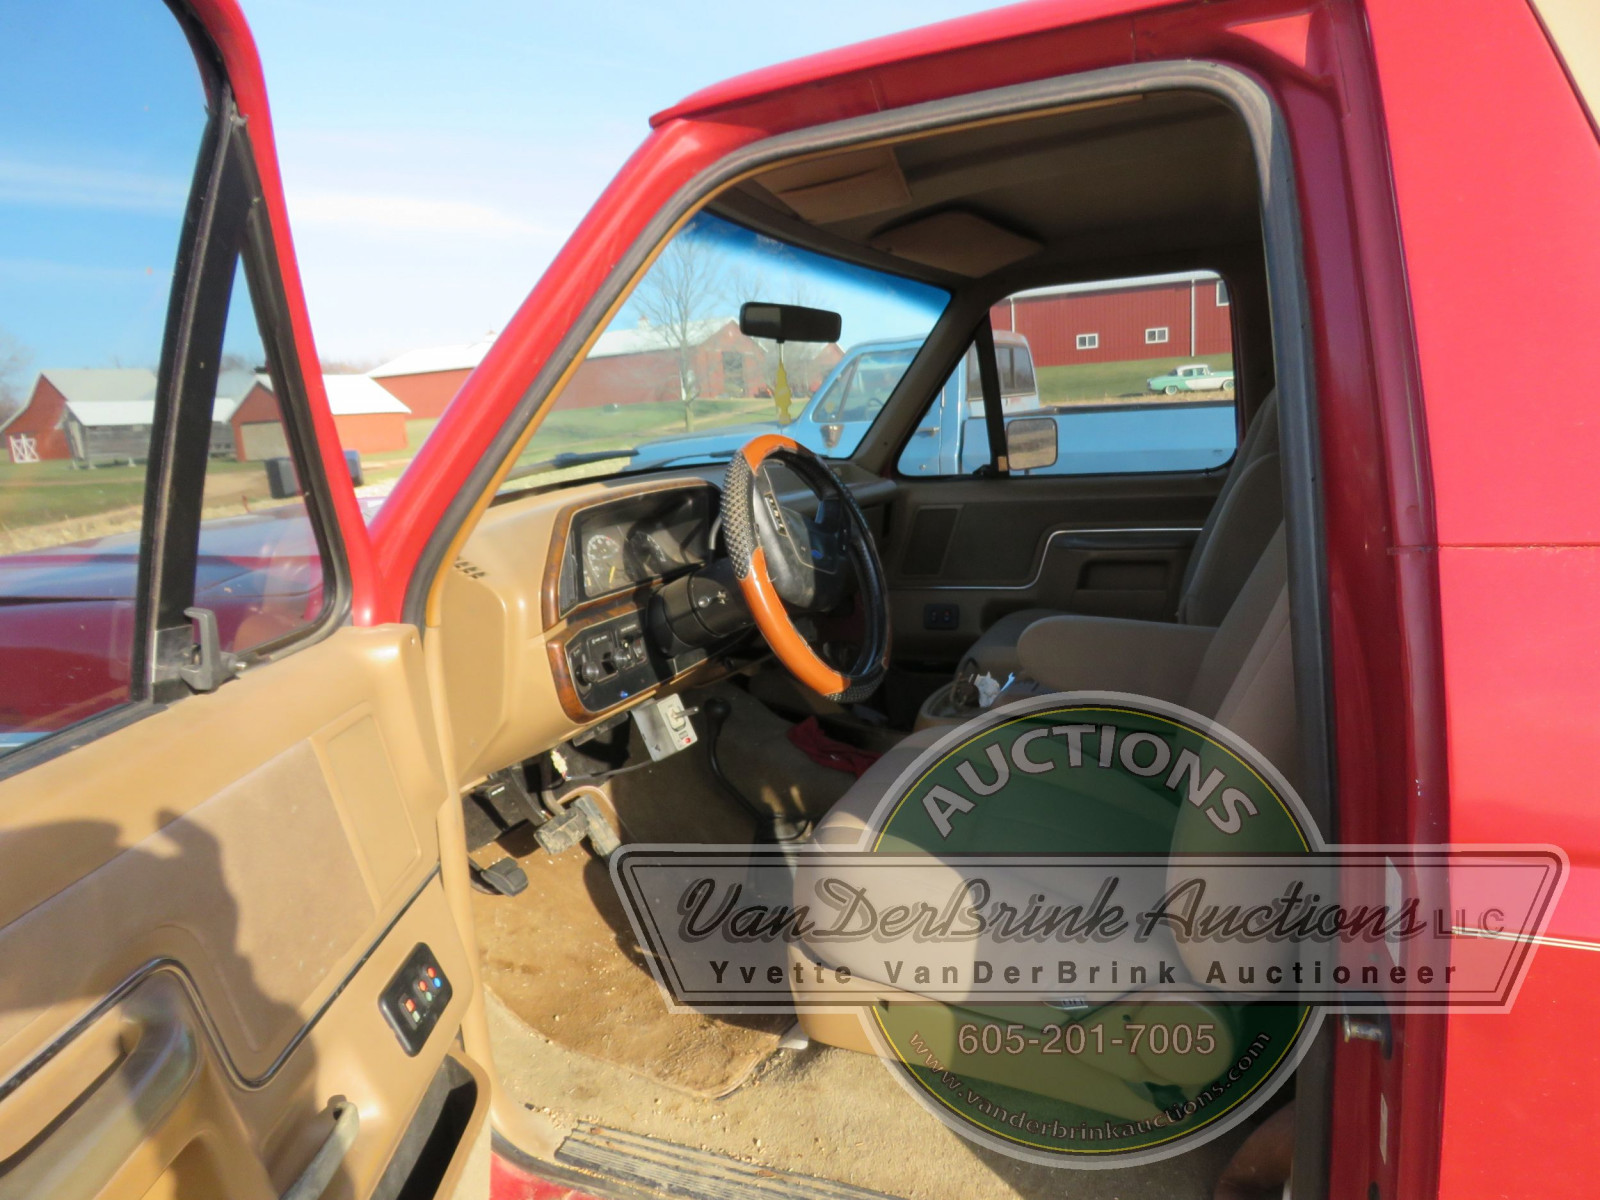 1989 Ford Bronco with Snowplow - Image 10